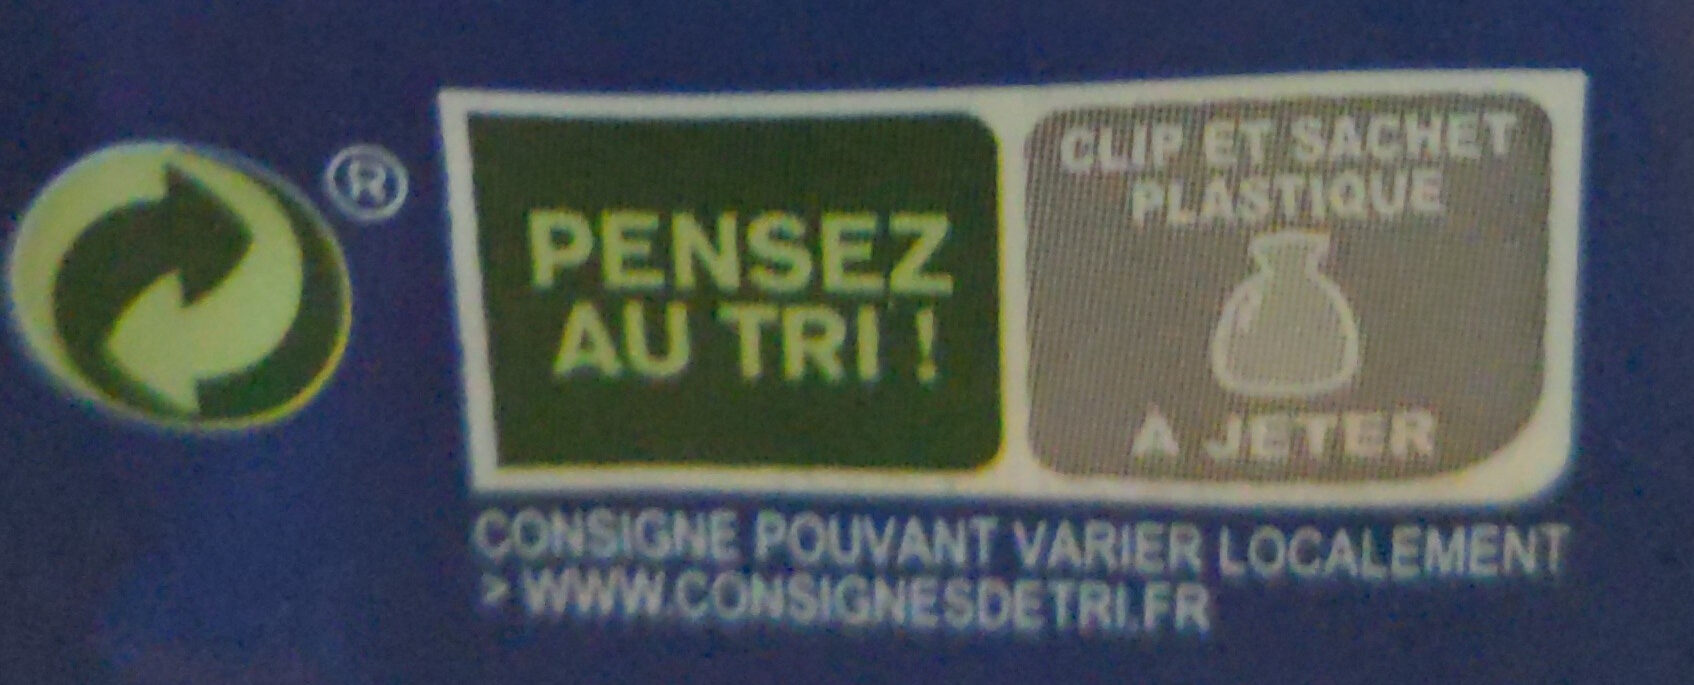 Pains au lait - Instruction de recyclage et/ou information d'emballage - fr